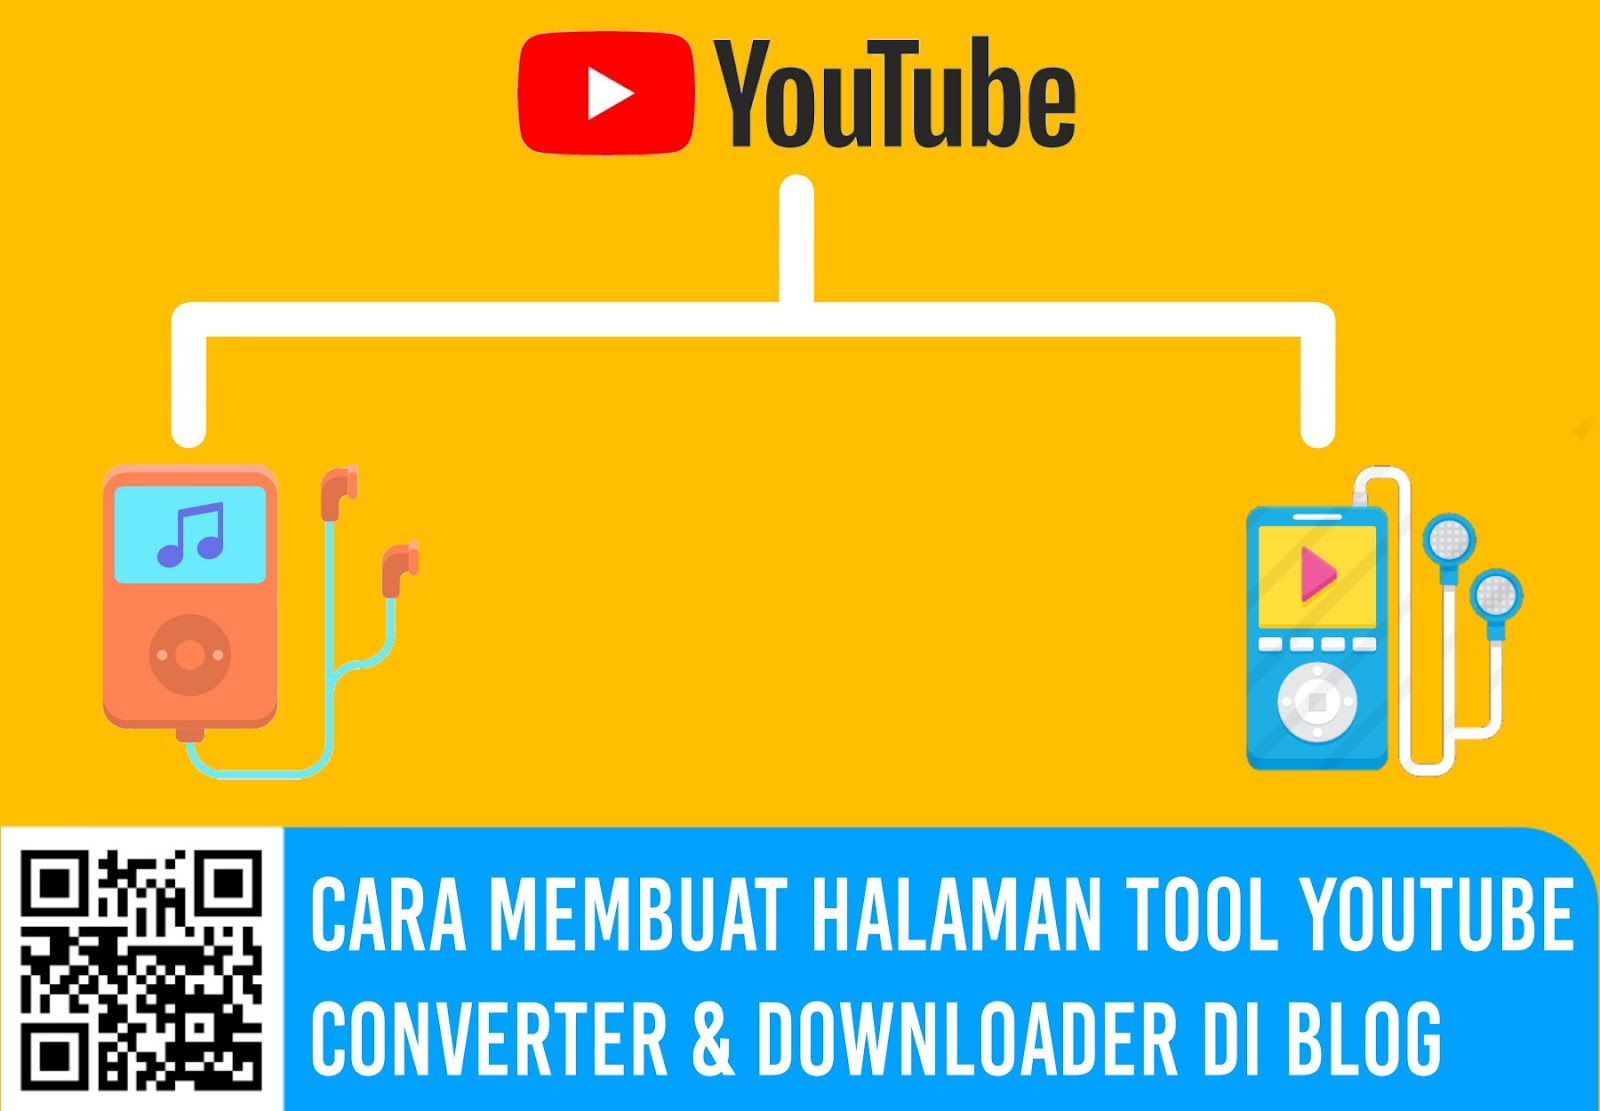 Cara Membuat Halaman Tool YouTube Converter & Downloader di Blog